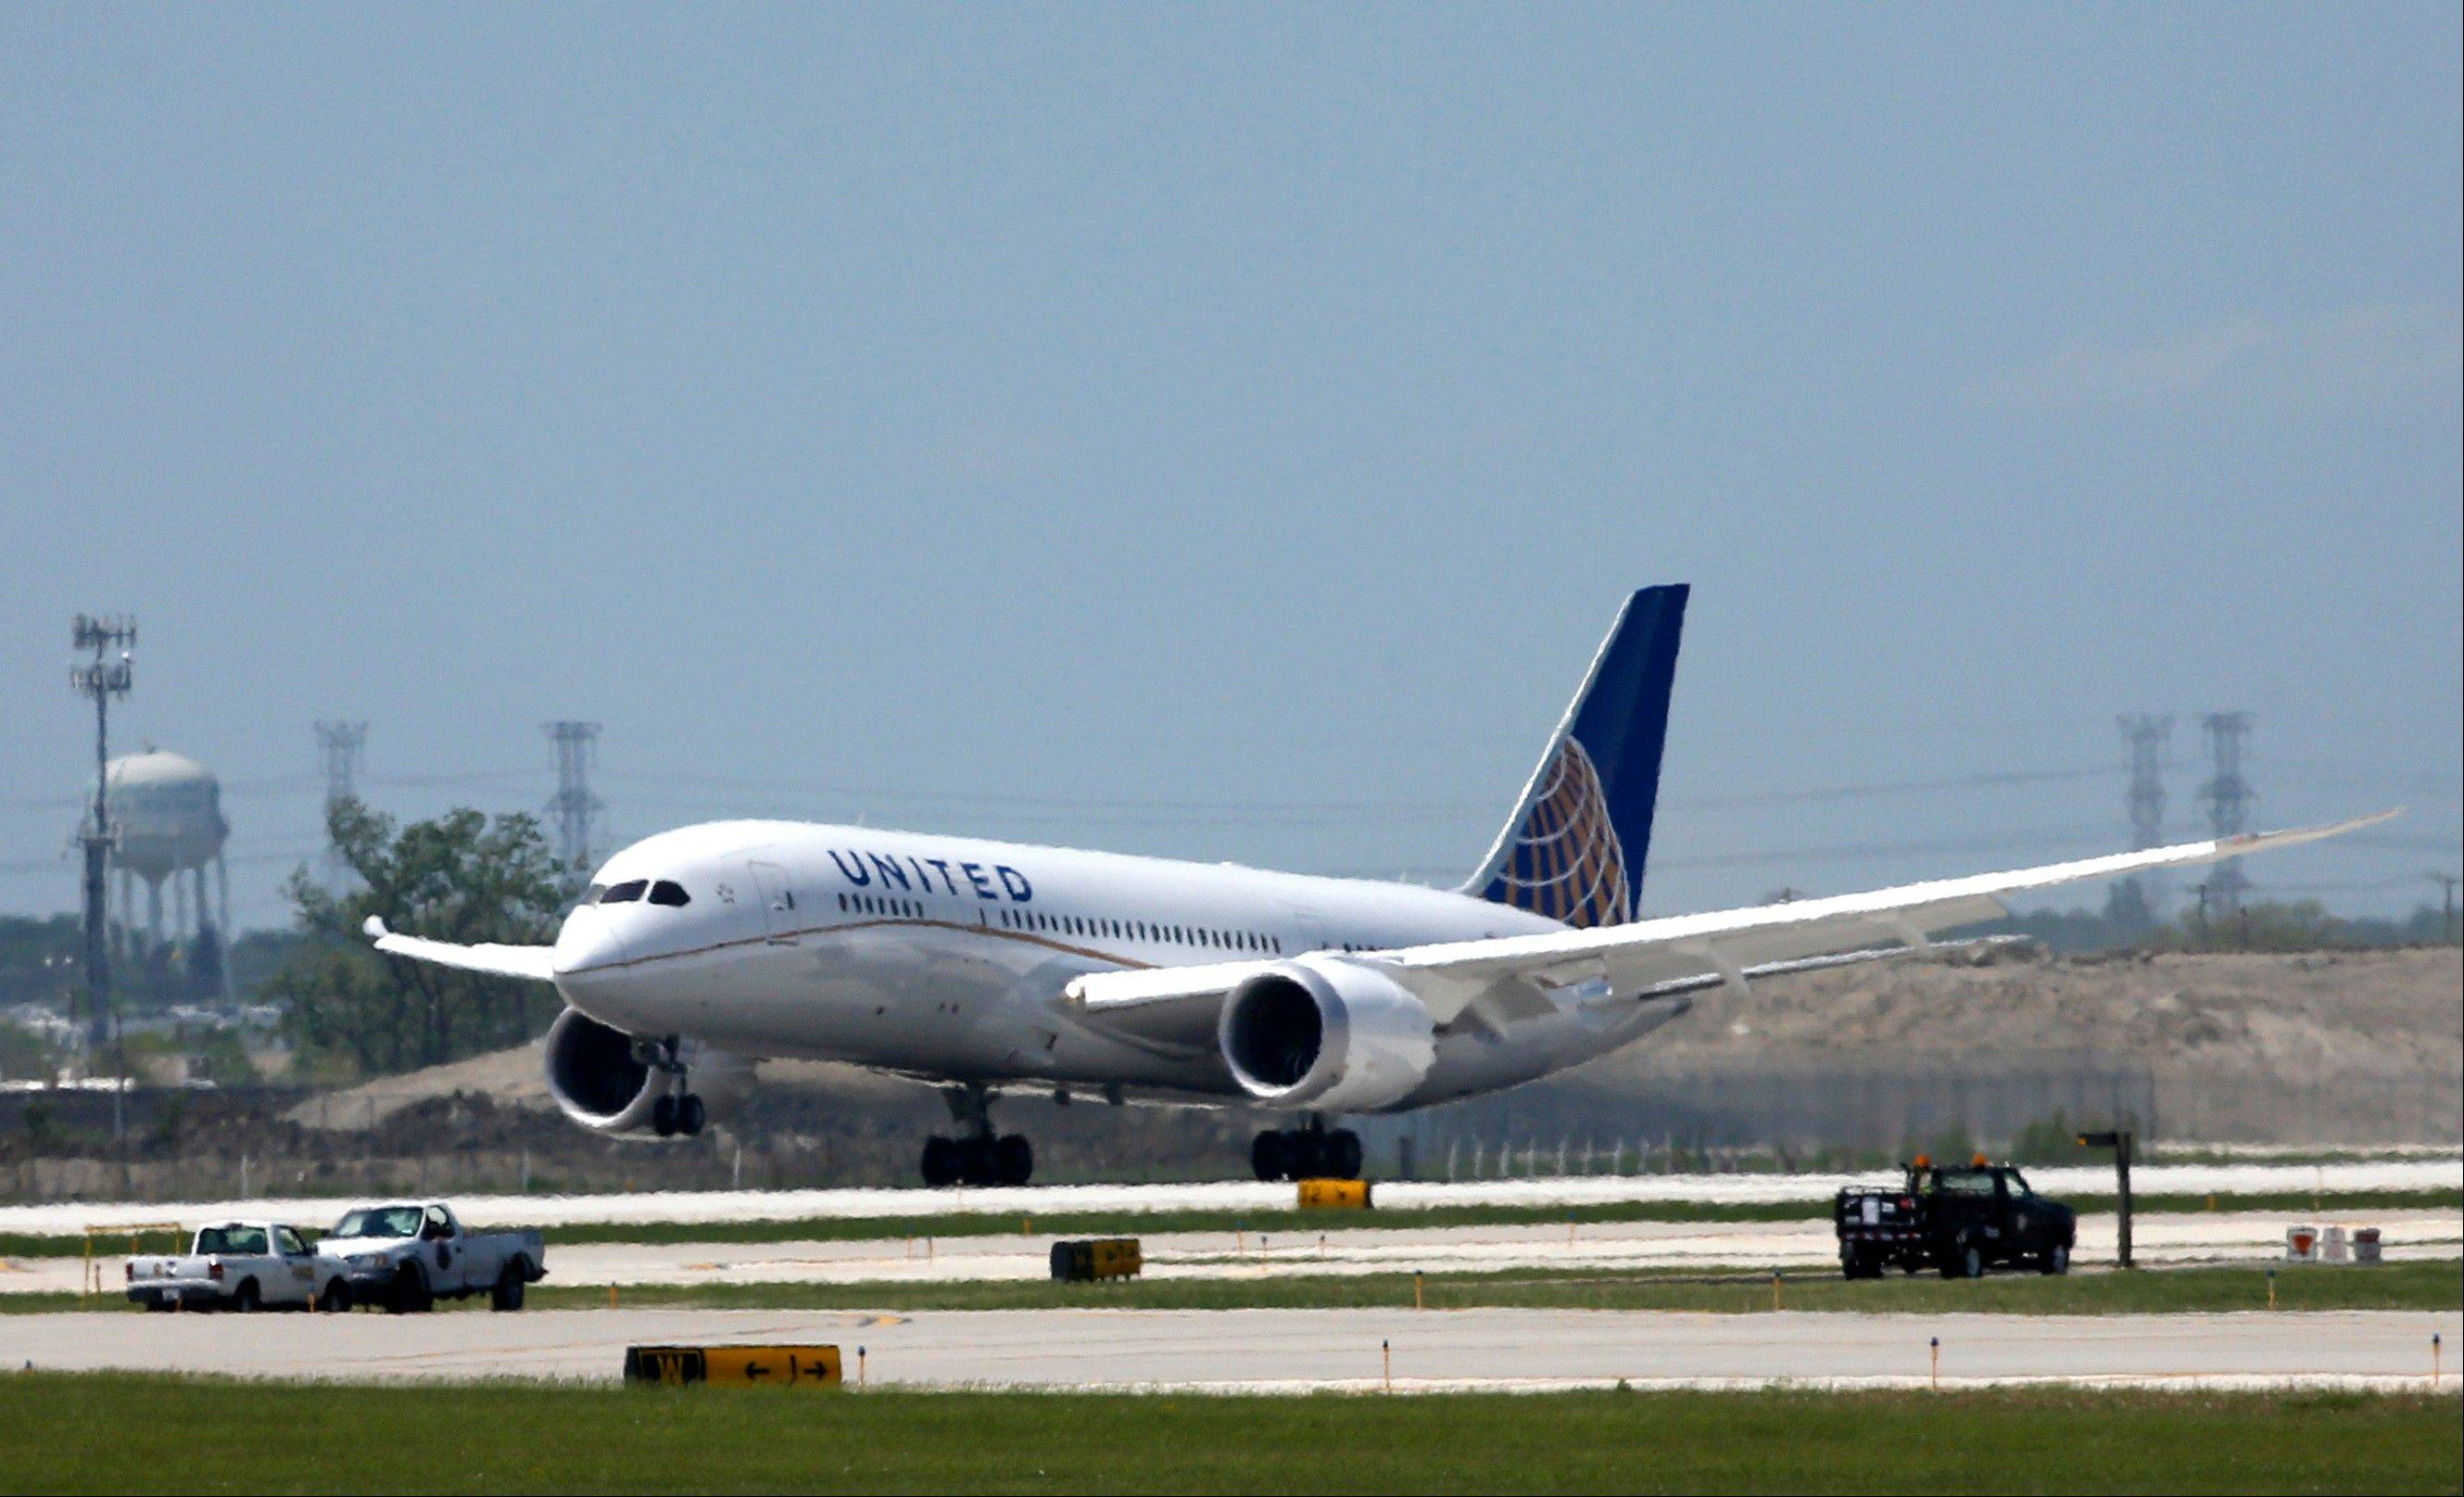 A United Airlines Boeing 787 Dreamliner aircraft lands at Chicago�s O�Hare International Airport Monday. The planes are returning to the air after being grounded for four months by the federal government because of smoldering batteries on 787s owned by other airlines.